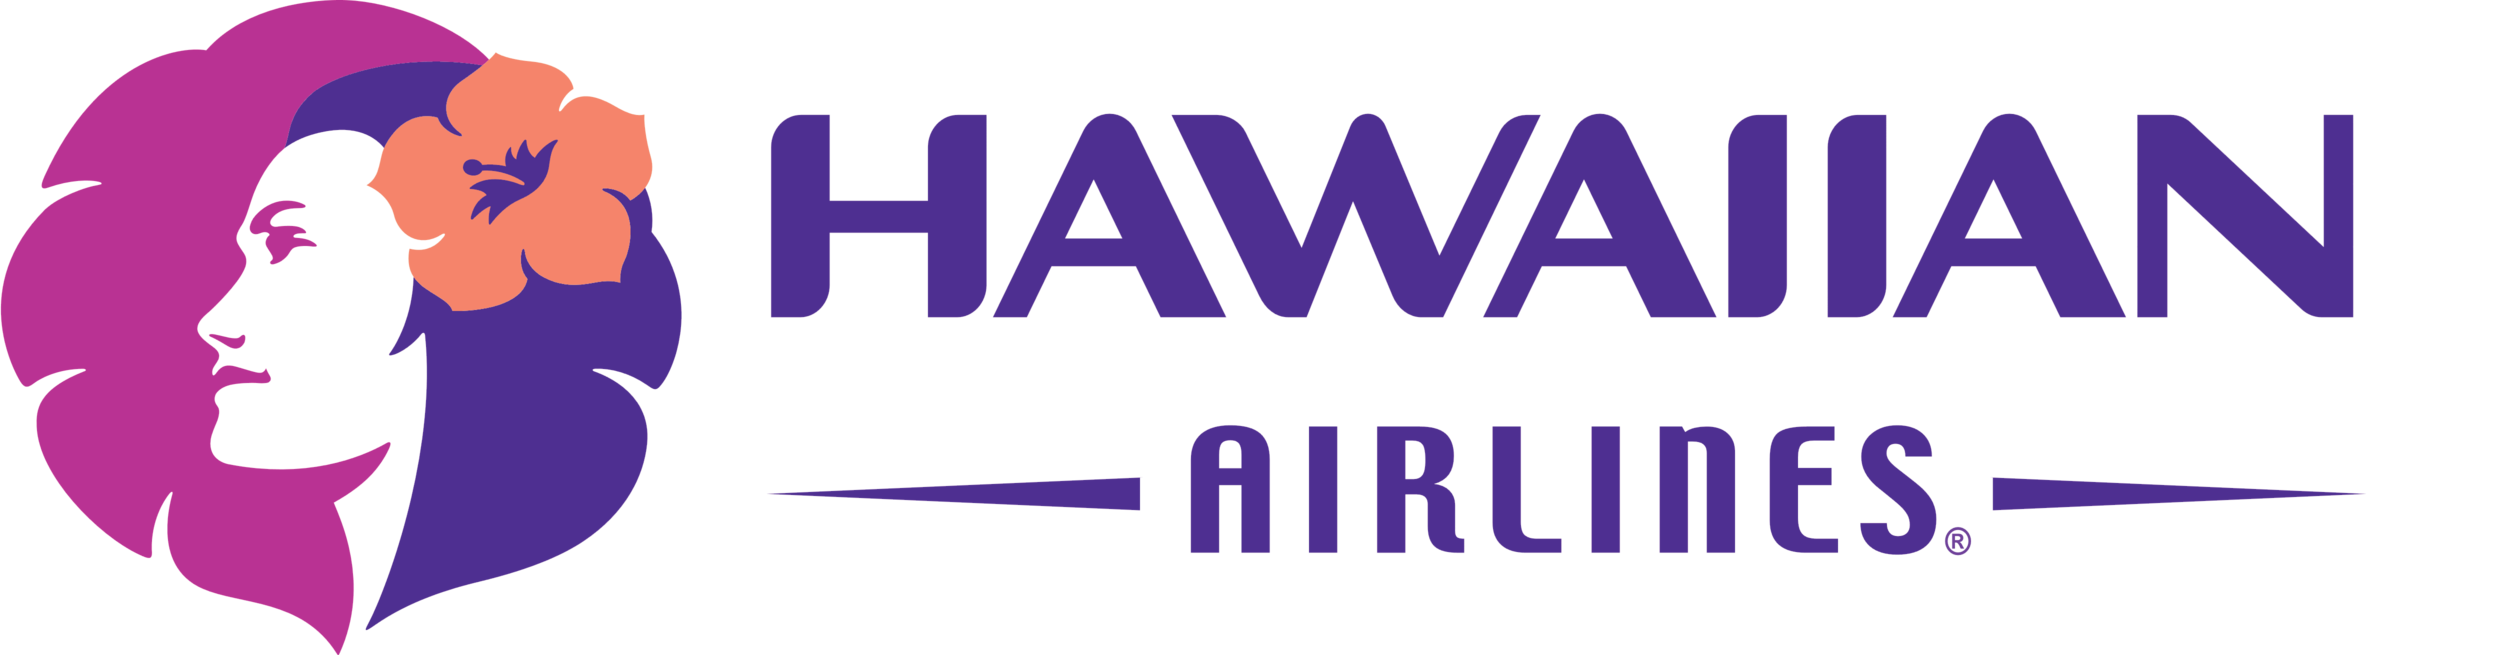 Hawaiian_Airlines_logo_logotype.png